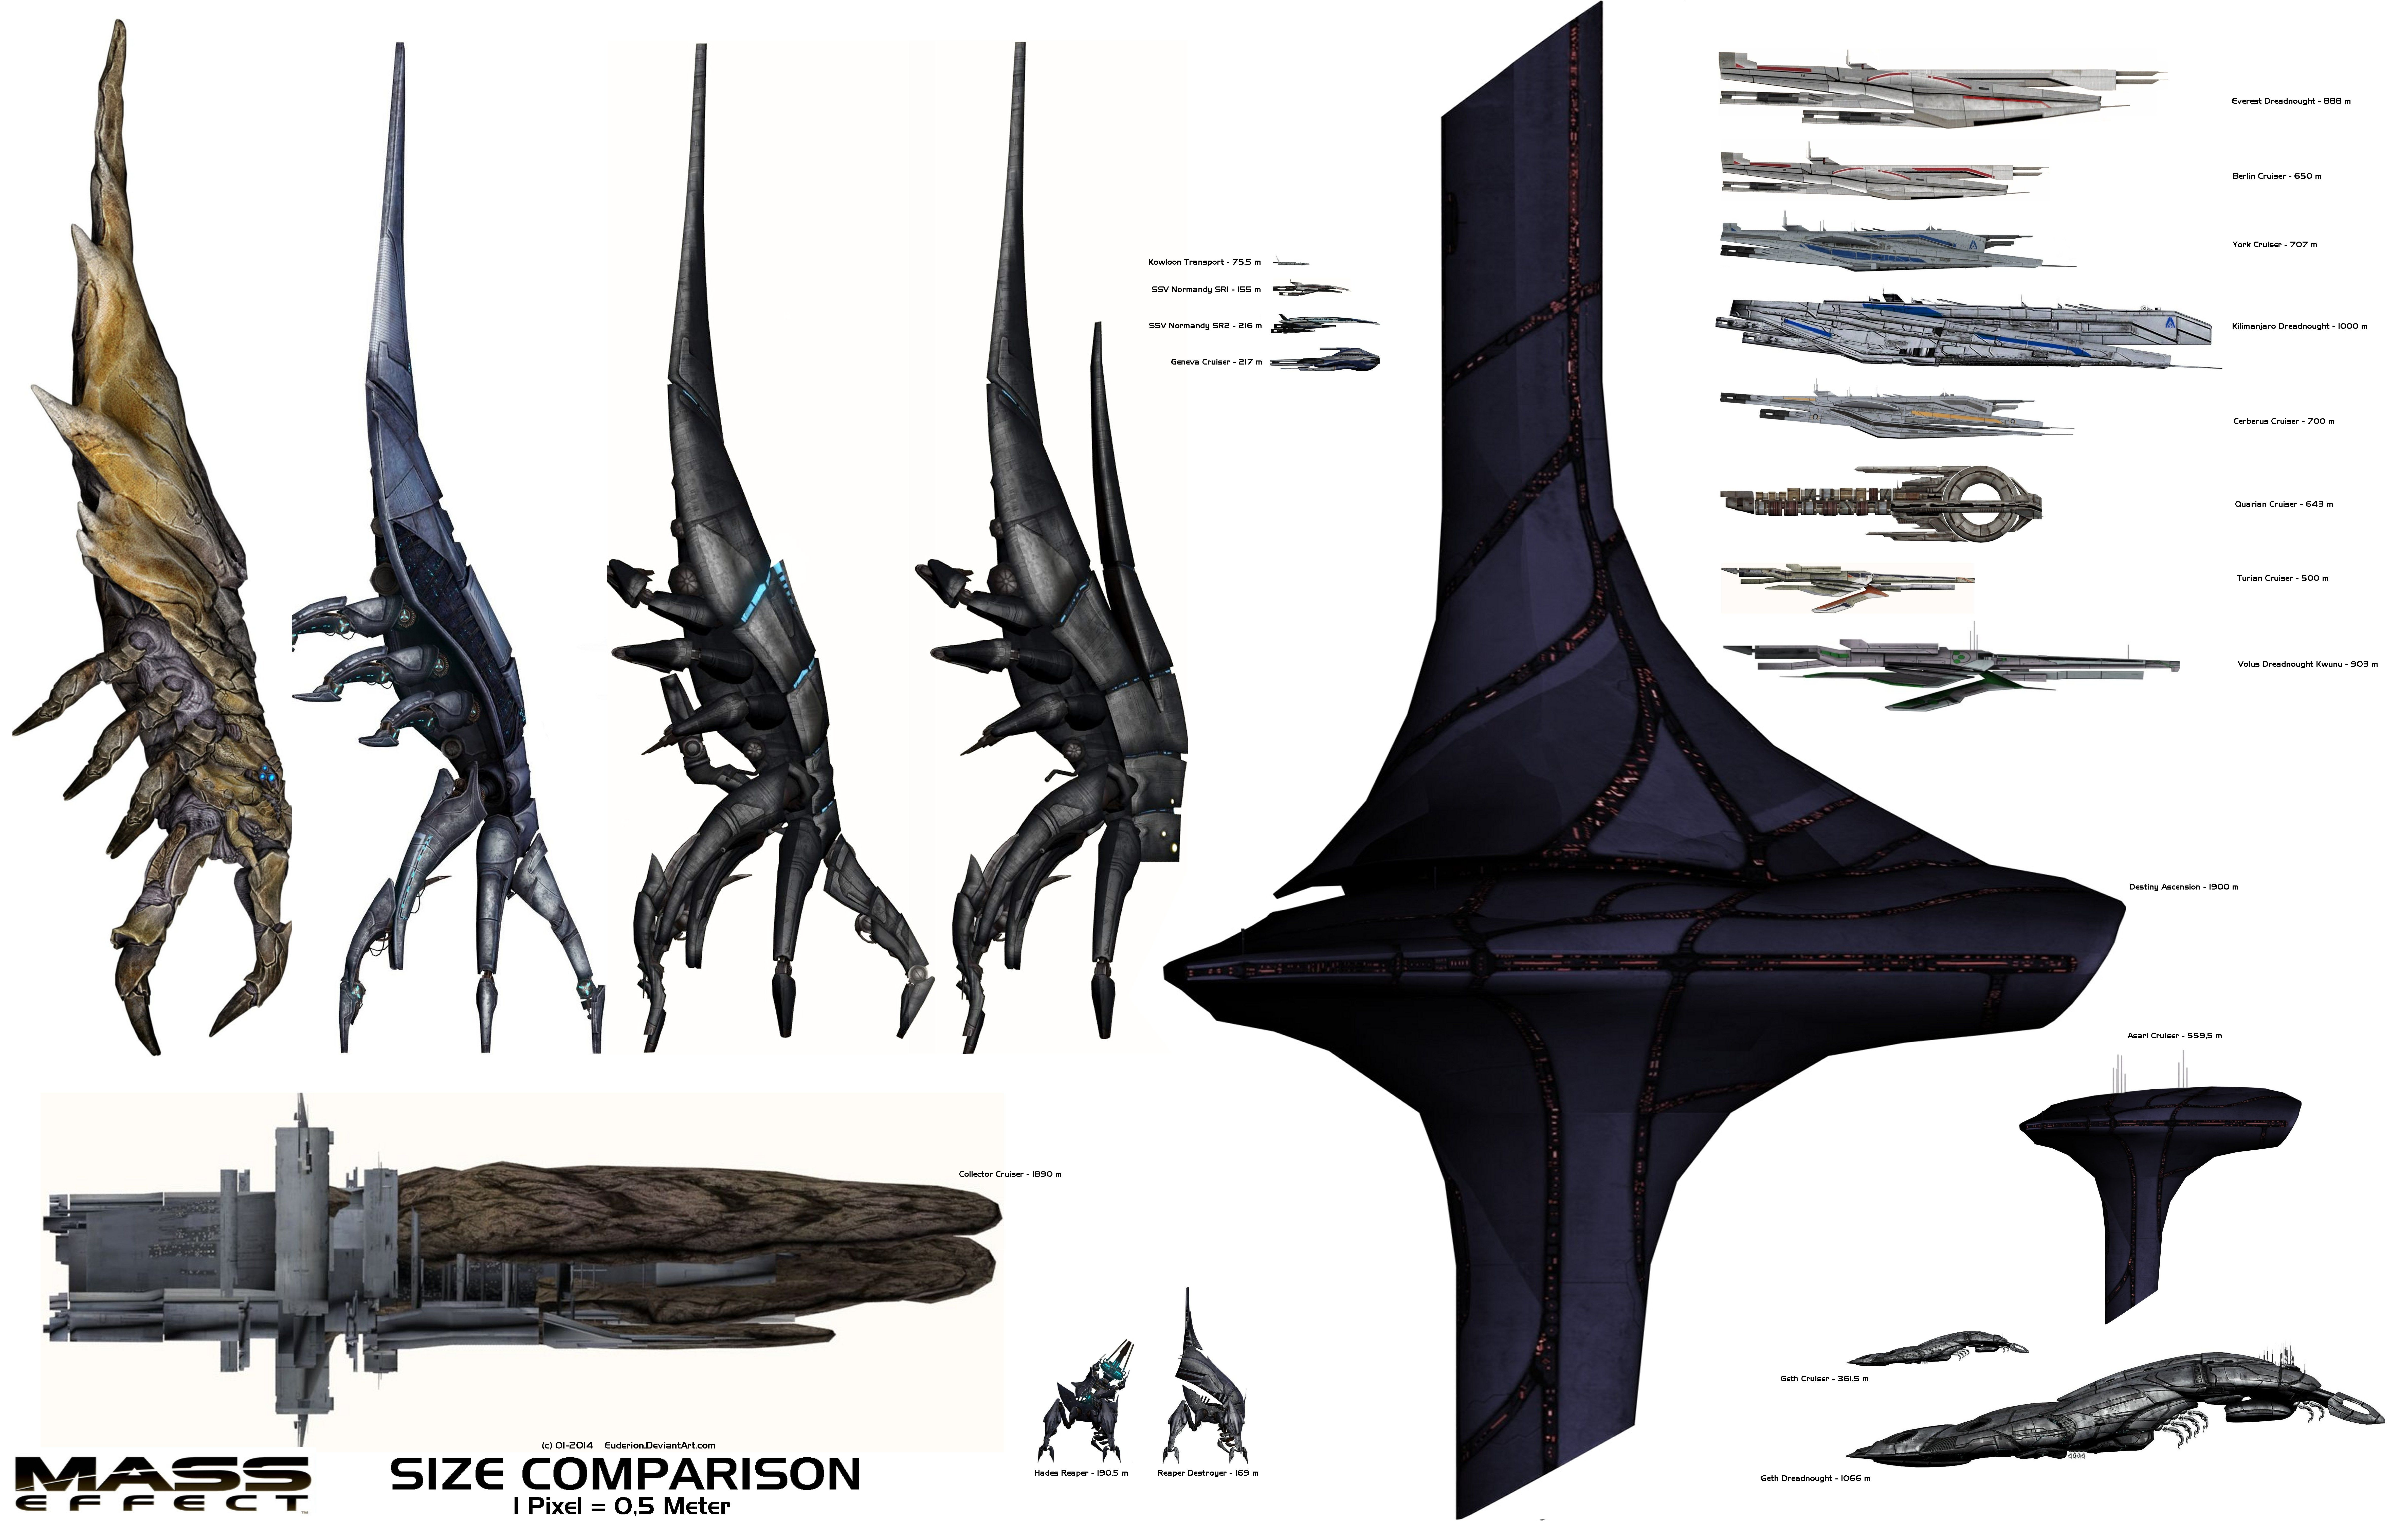 Pin By Robert Shea On Character Gear Design Scifi Mass Effect Ships Mass Effect Reapers Mass Effect Art